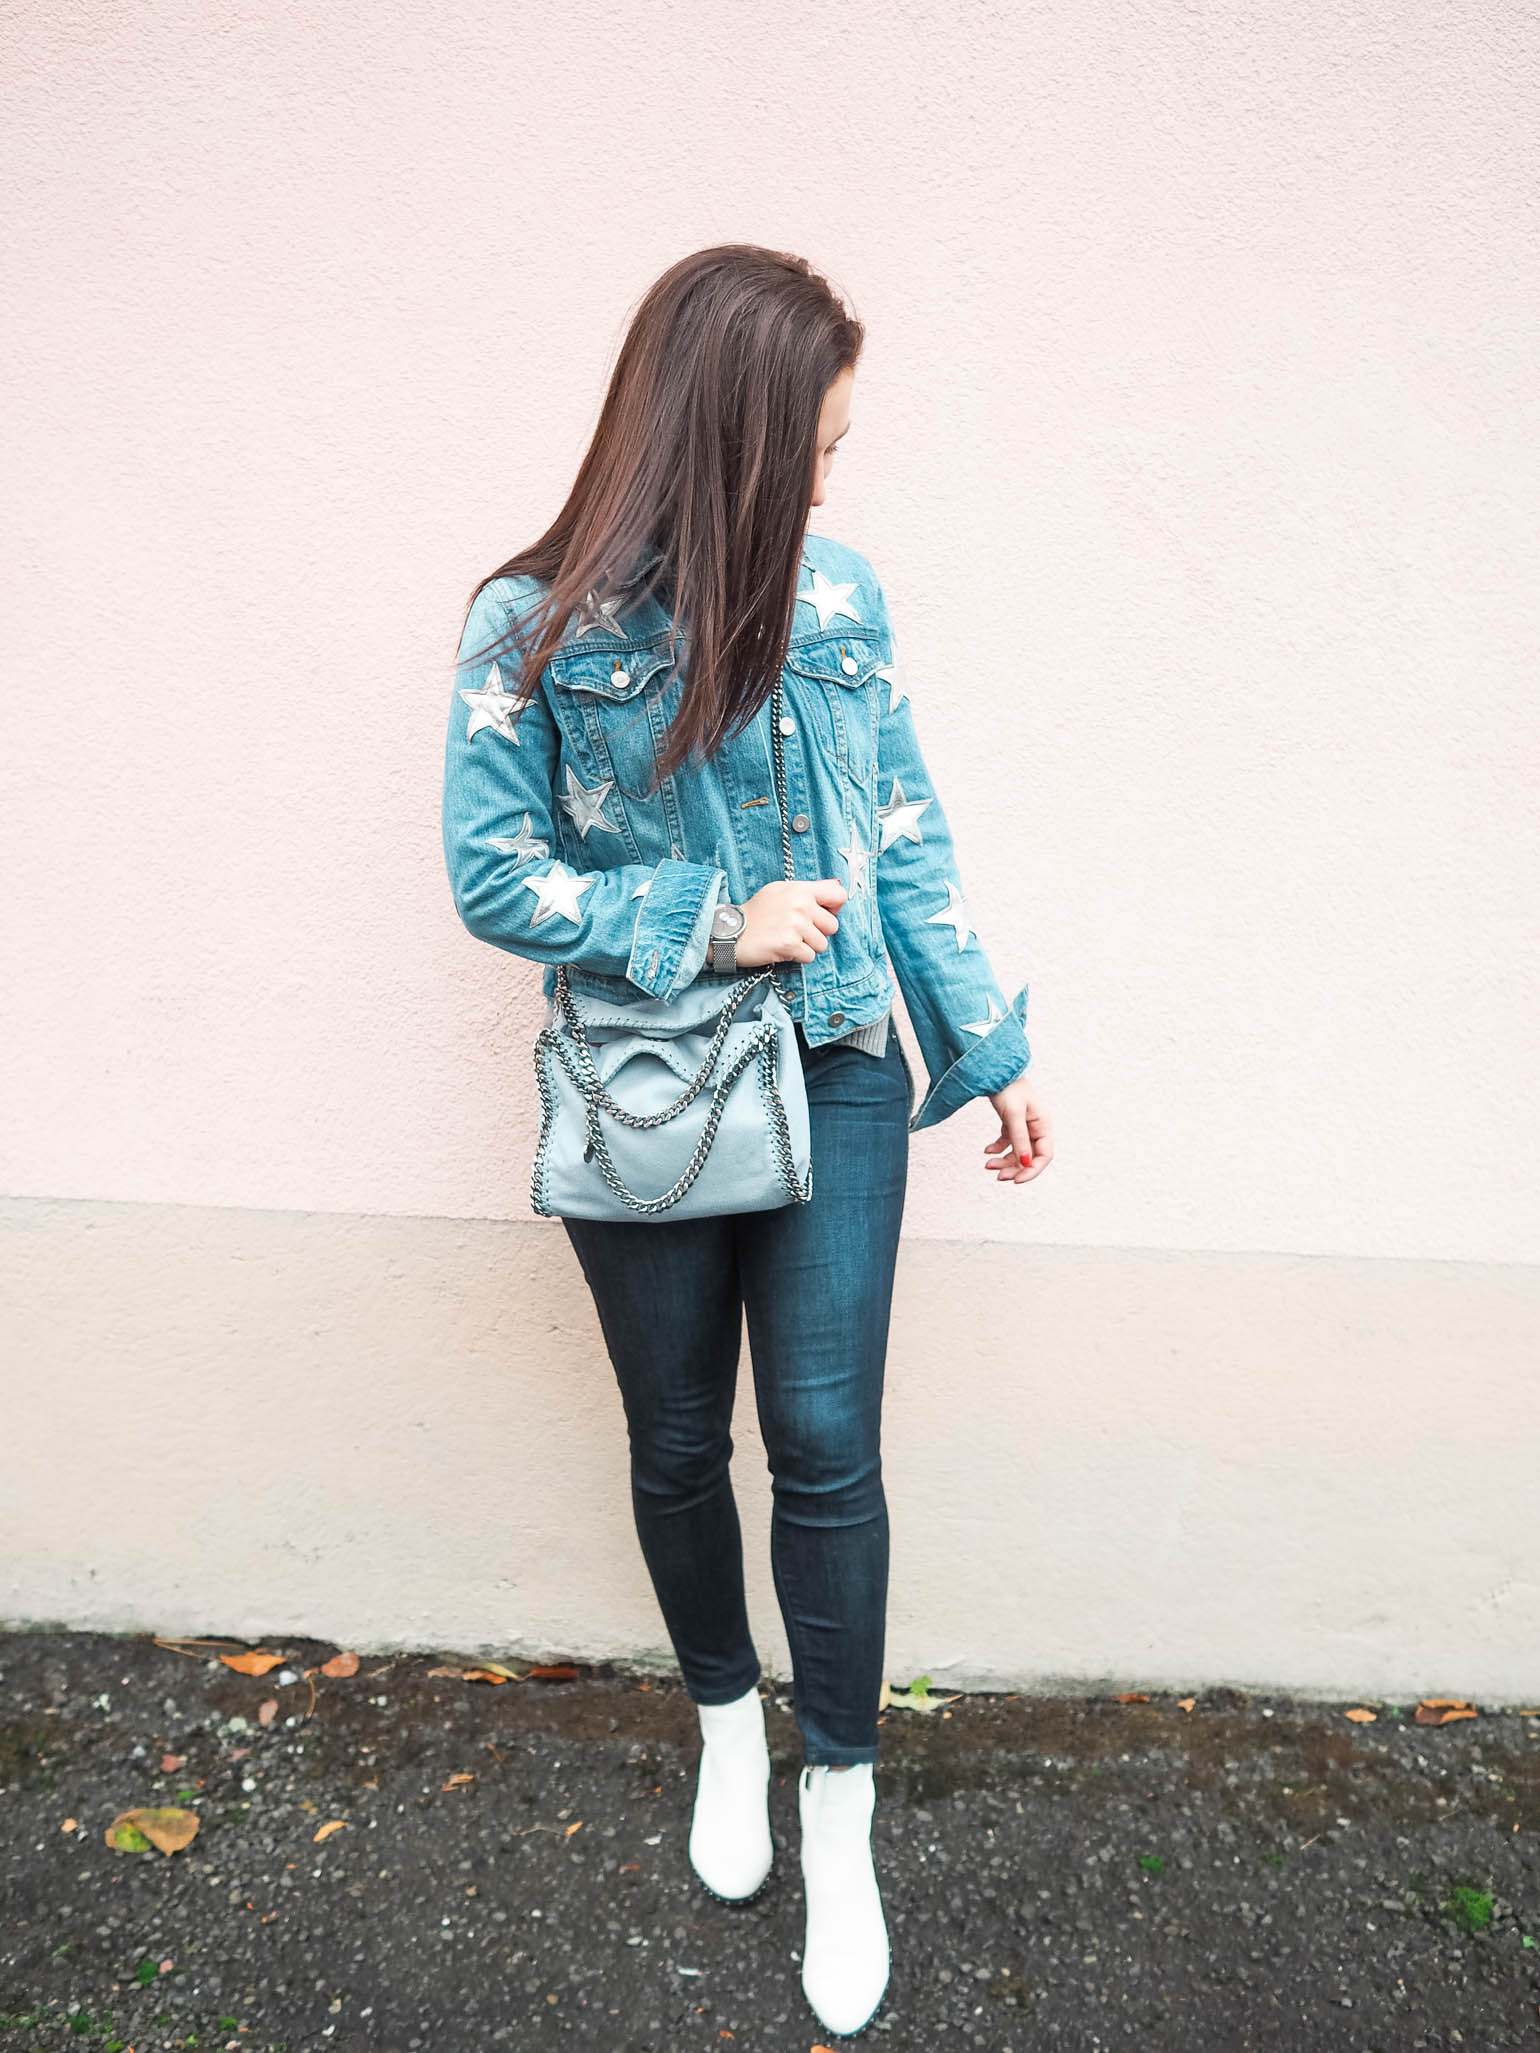 Cristina from The Brunette Nomad, Dallas fashion blogger living in Switzerland, shows you how to winterize your denim jacket using her favorite star printed denim jacket